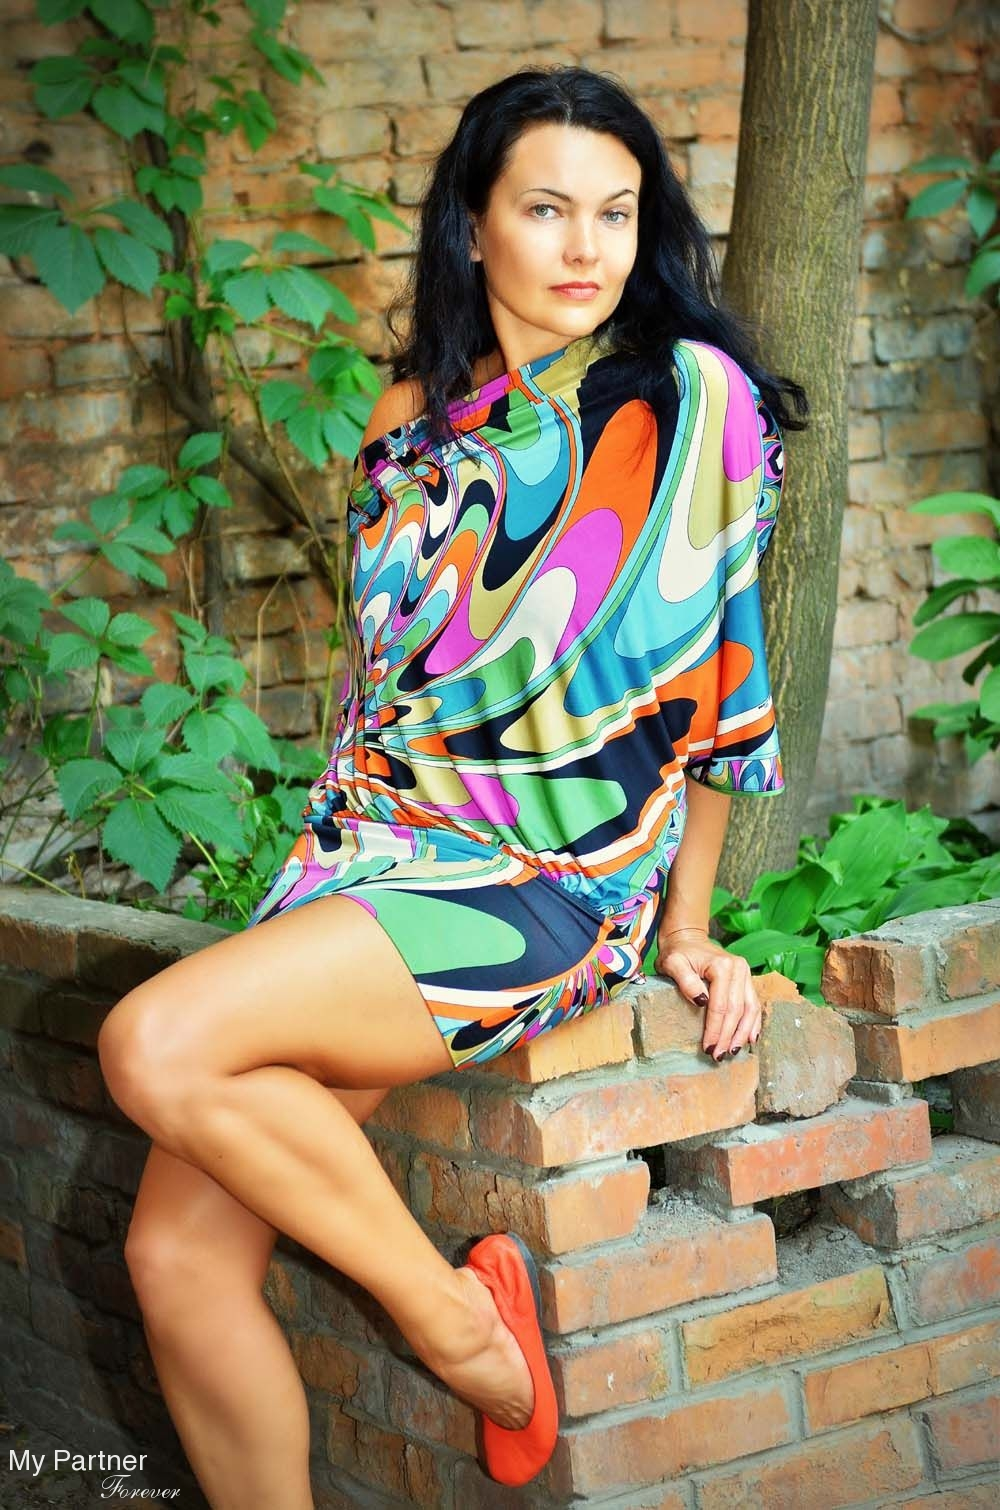 Meet Gorgeous Ukrainian Girl Olga from Kharkov, Ukraine